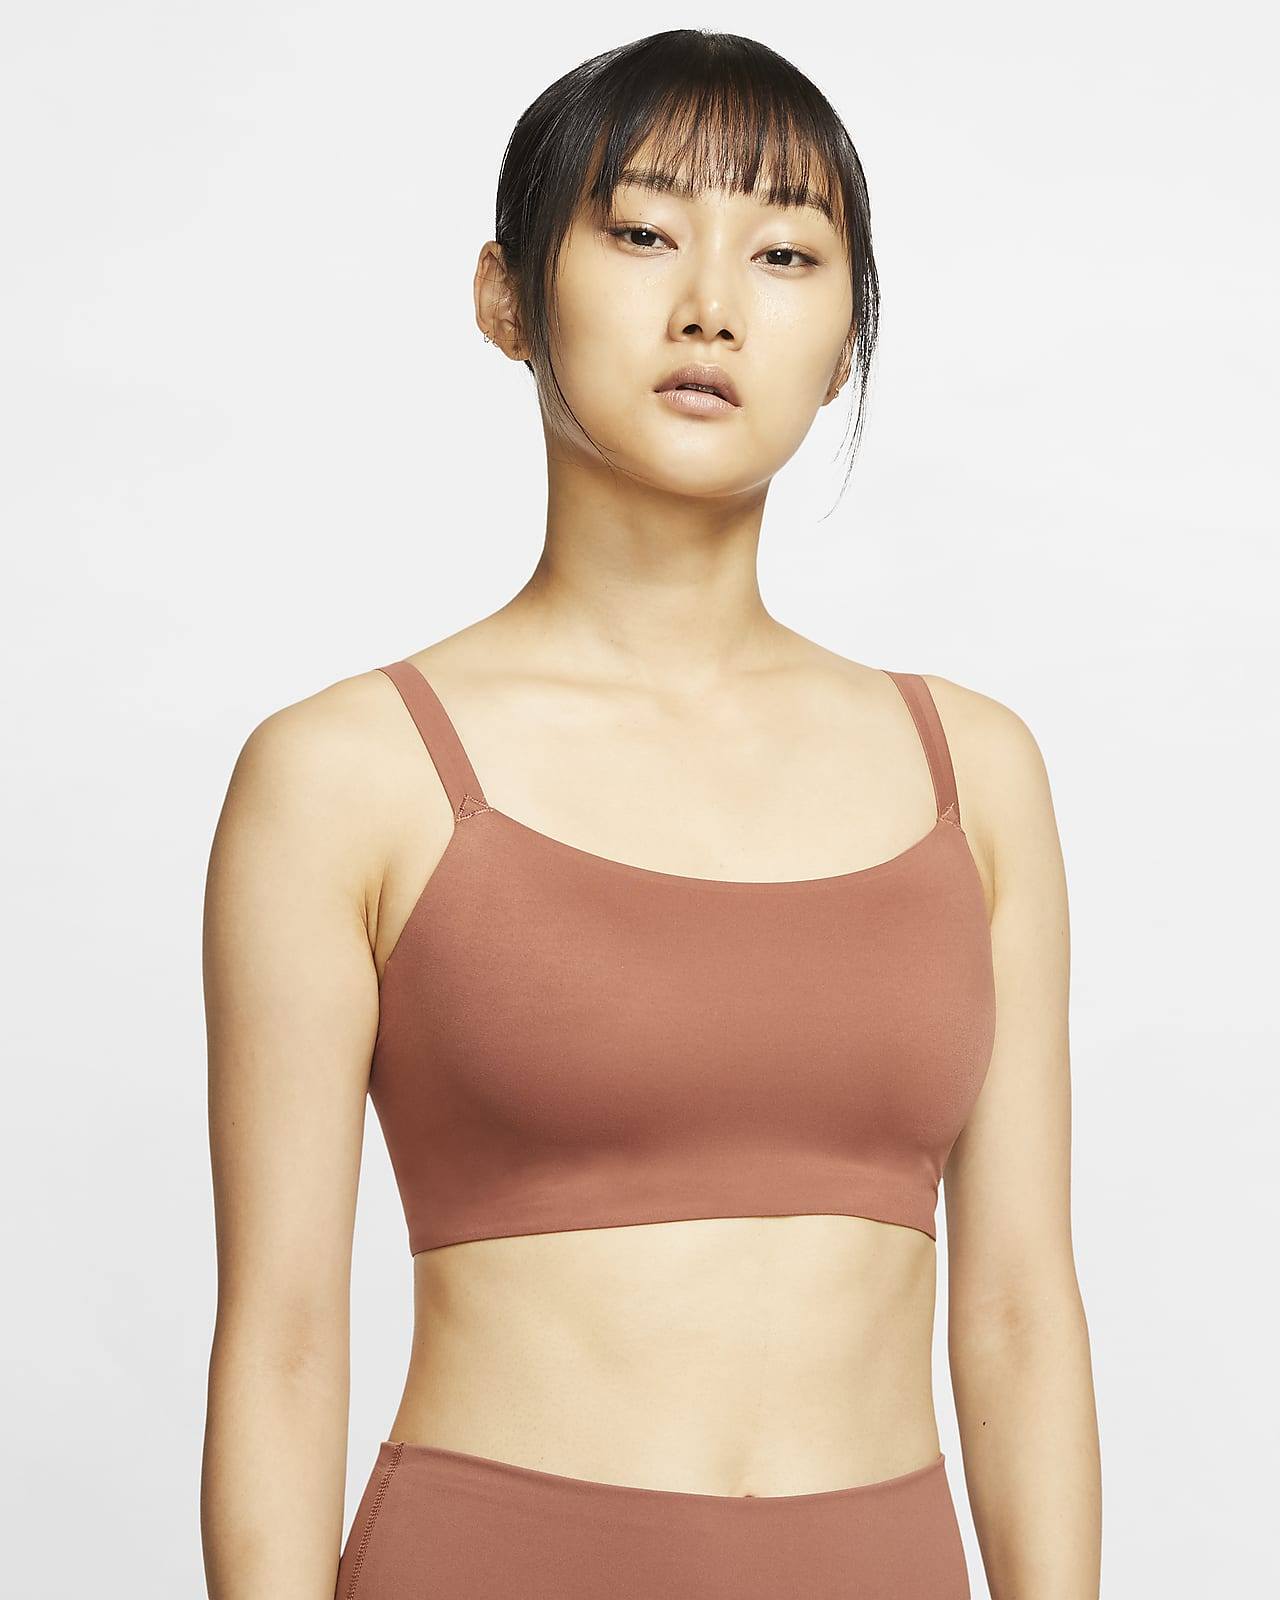 Nike Indy Luxe Women's Light-Support Padded Convertible Sports Bra